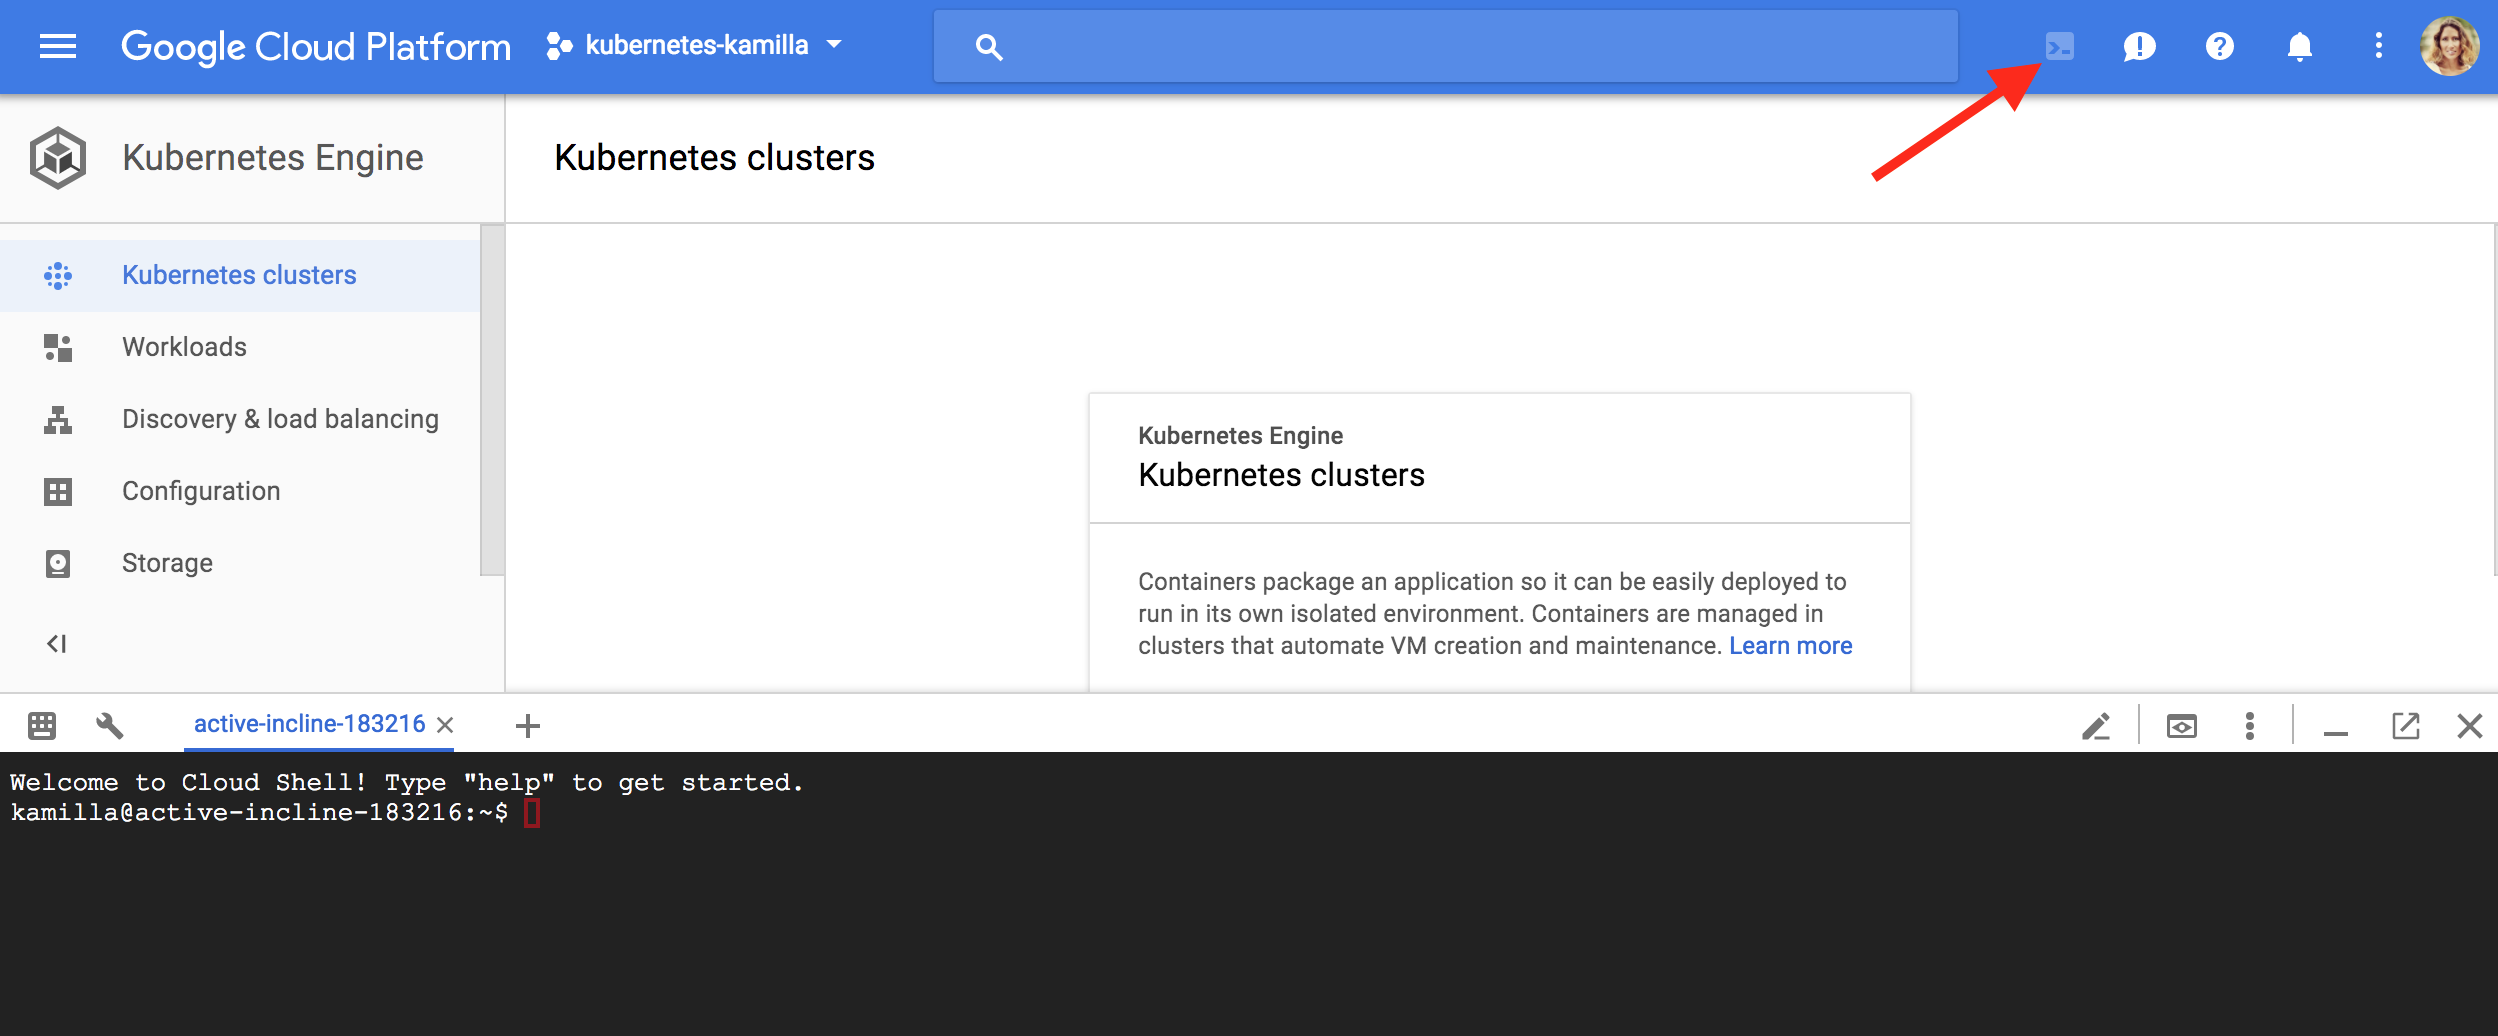 Old URL: https://support.cloudflare.com/hc/article_attachments/115003972971/Google_Cloud_Shell.png Article IDs: 115003384591 | Using Kubernetes on GKE and AWS with Cloudflare Load Balancer